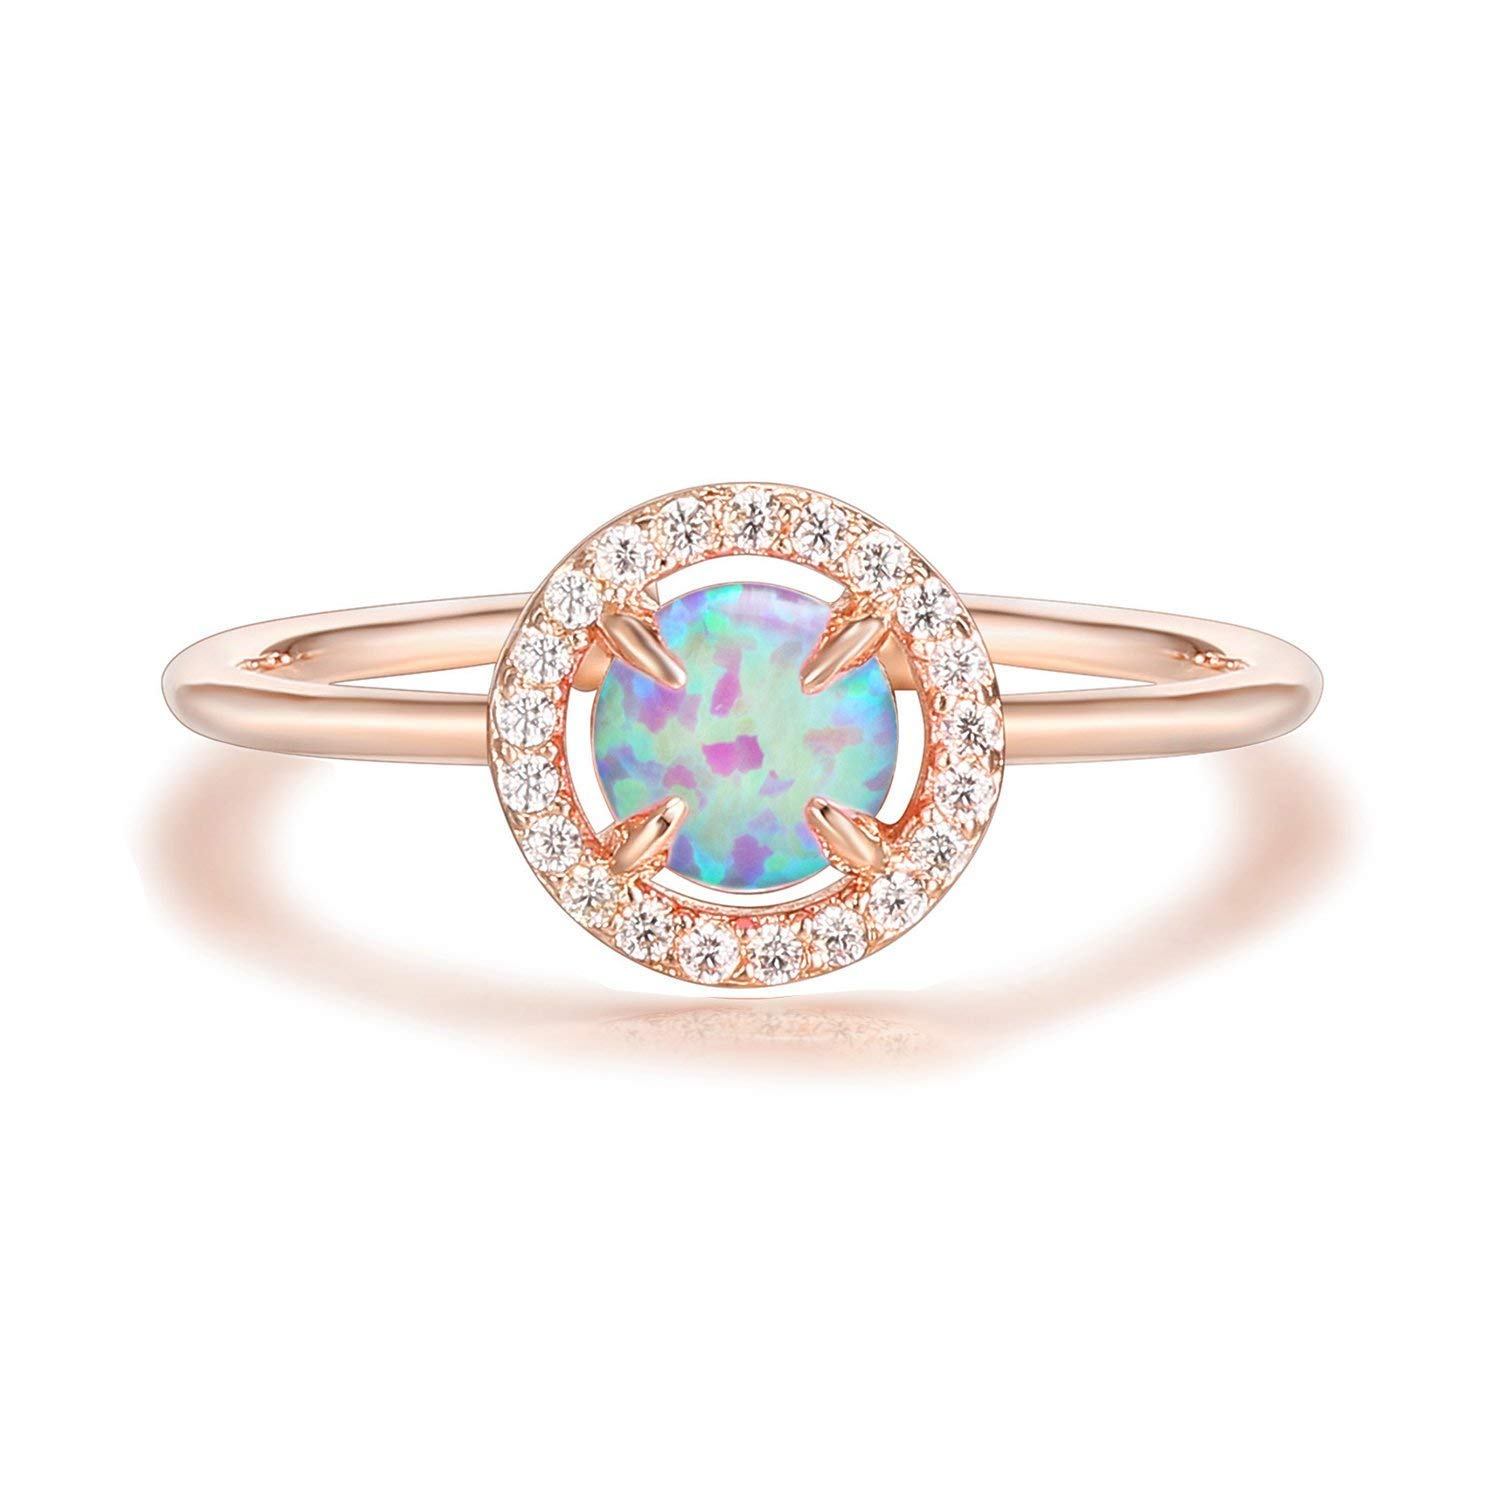 770ad42825bf2 PAVOI 14K Gold Plated Rose Gold Ring Opal Ring   Rings for Women